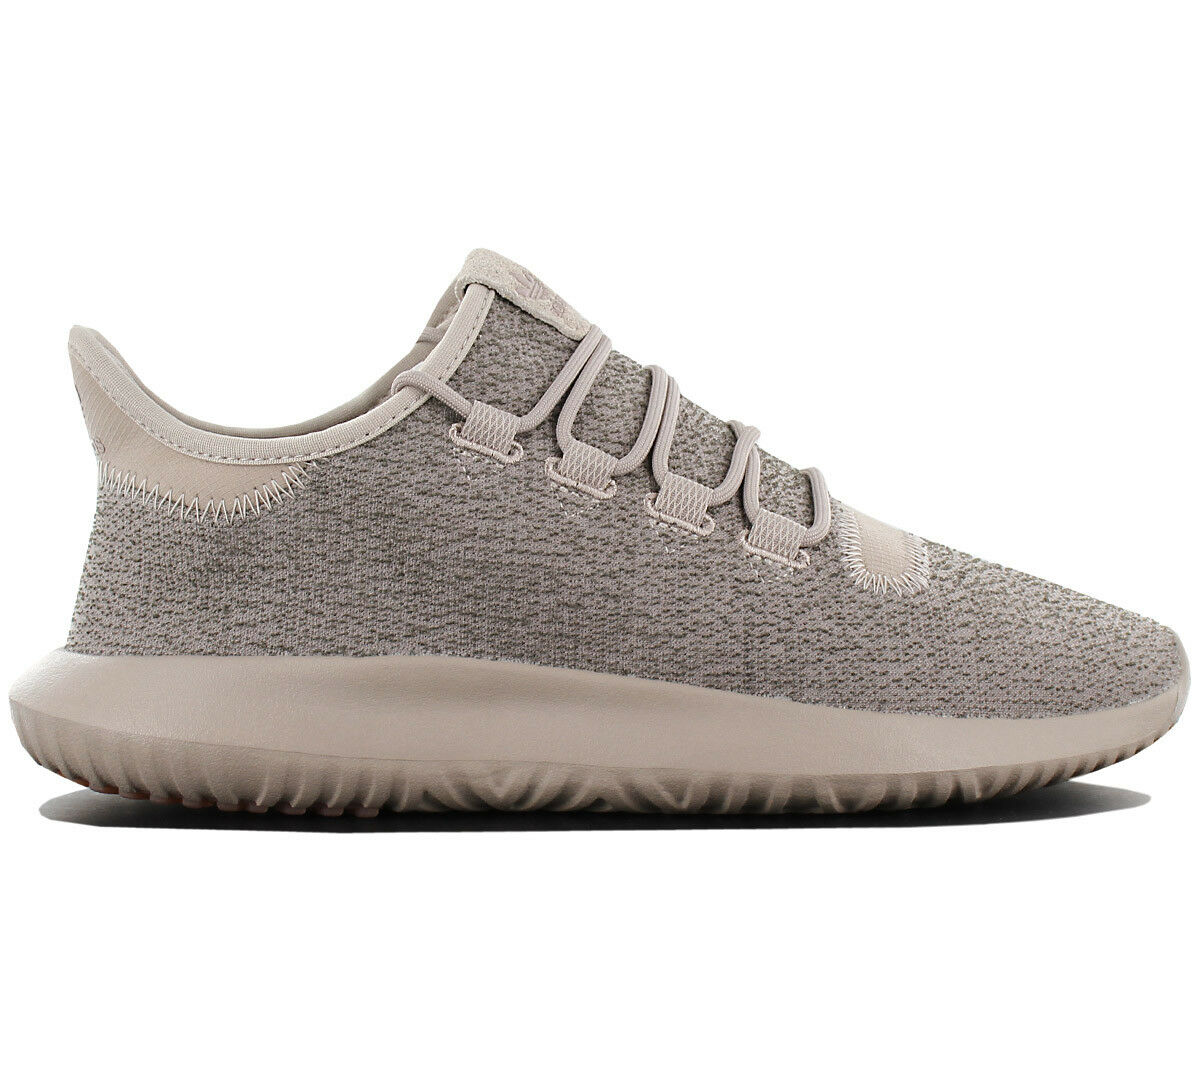 Adidas Originals BY3574 Tubular Herren Shadow Basket Schuh Grau Herren Tubular fe0994